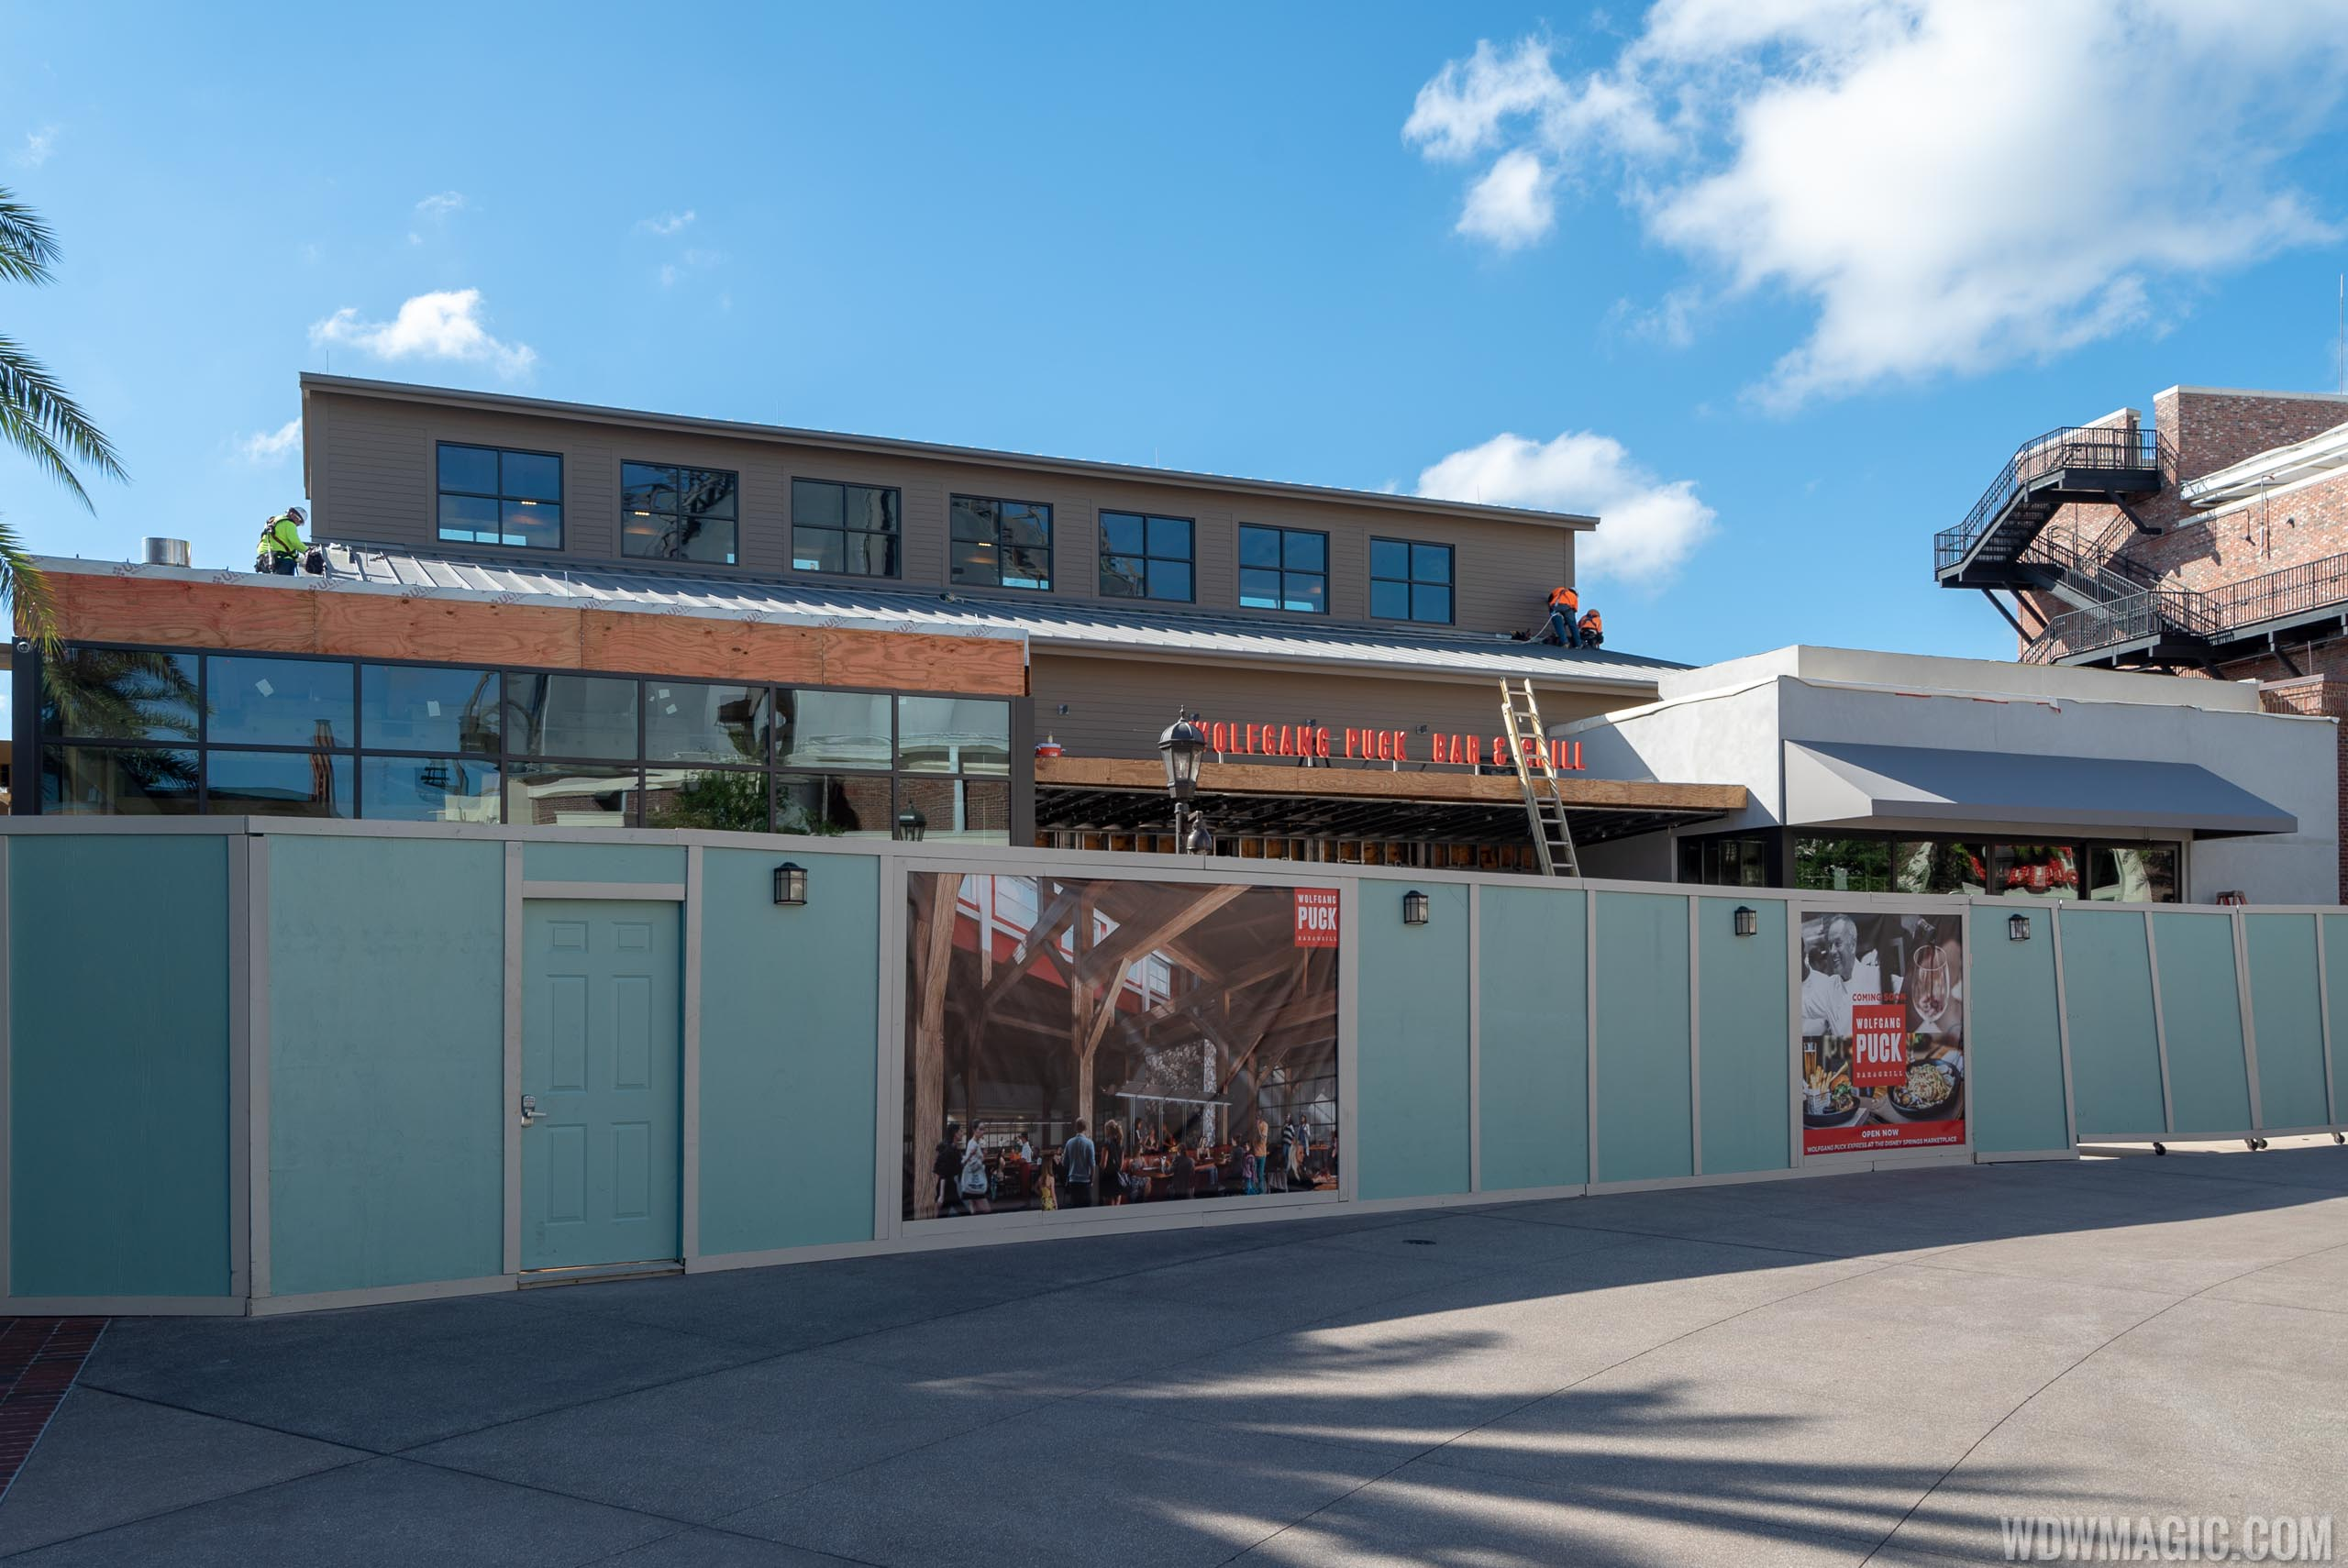 Wolfgang Puck Bar and Grill construction - October 2018